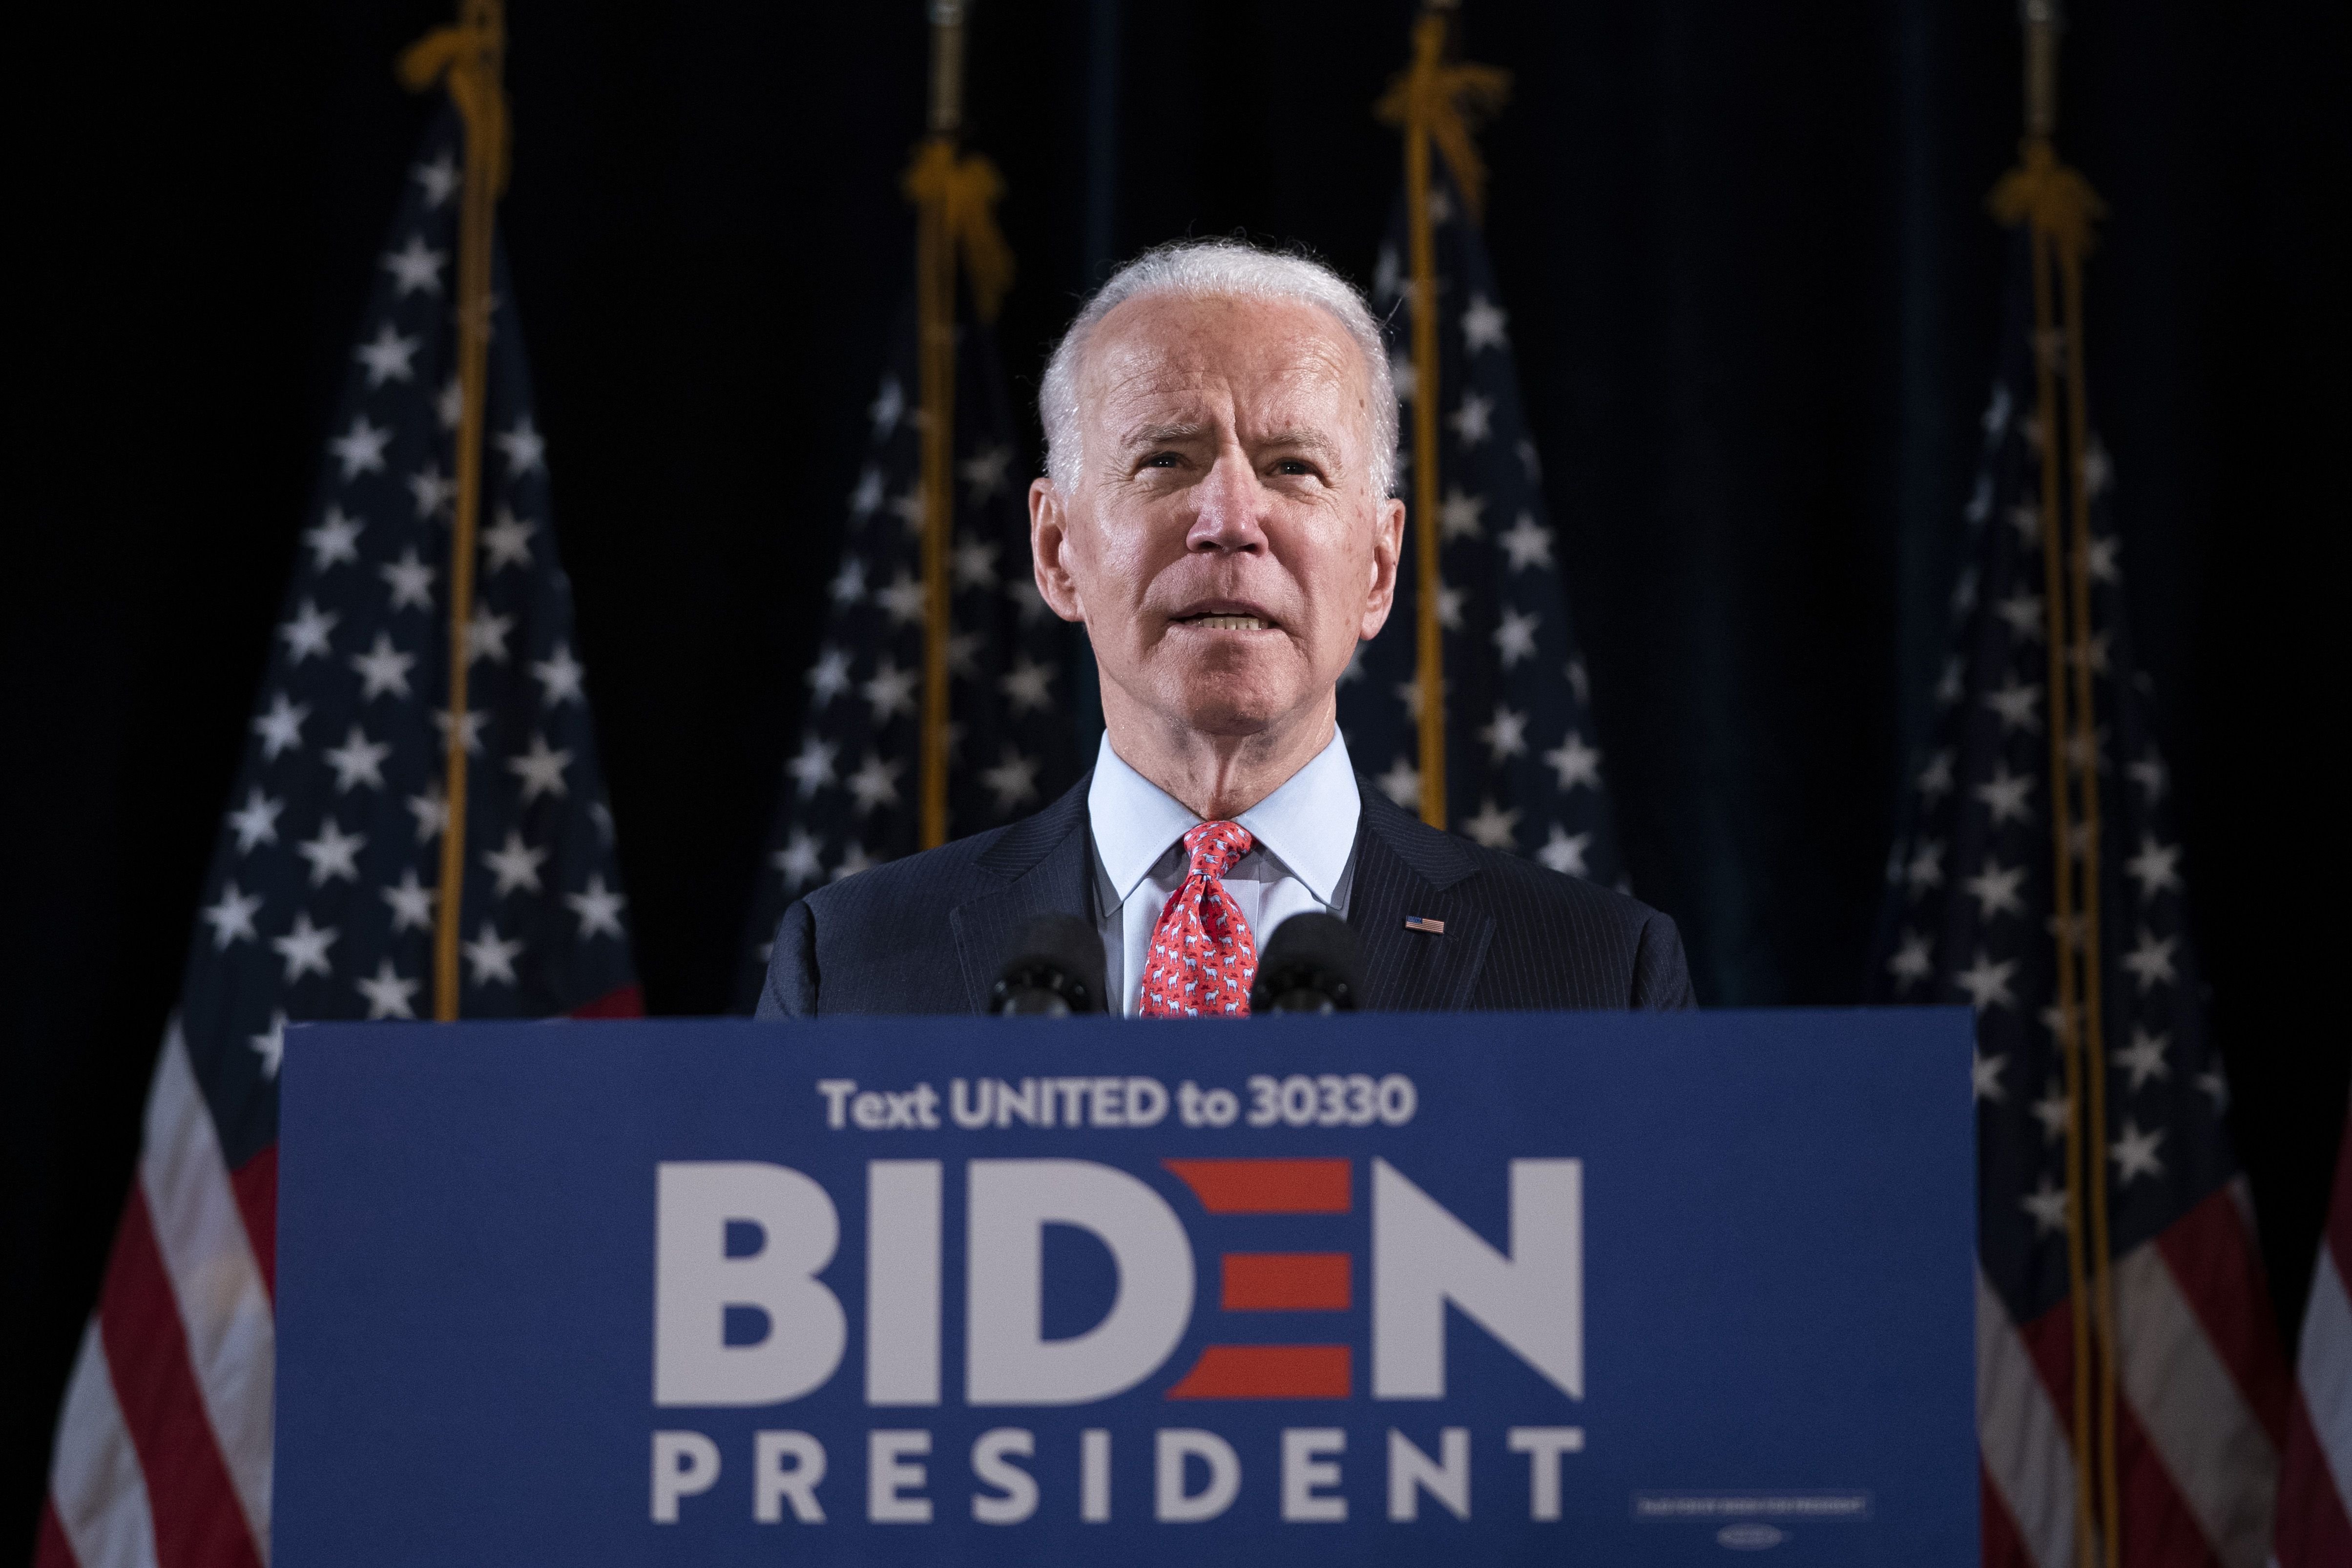 Joe Biden's campaign gets backing from two major Dem groups